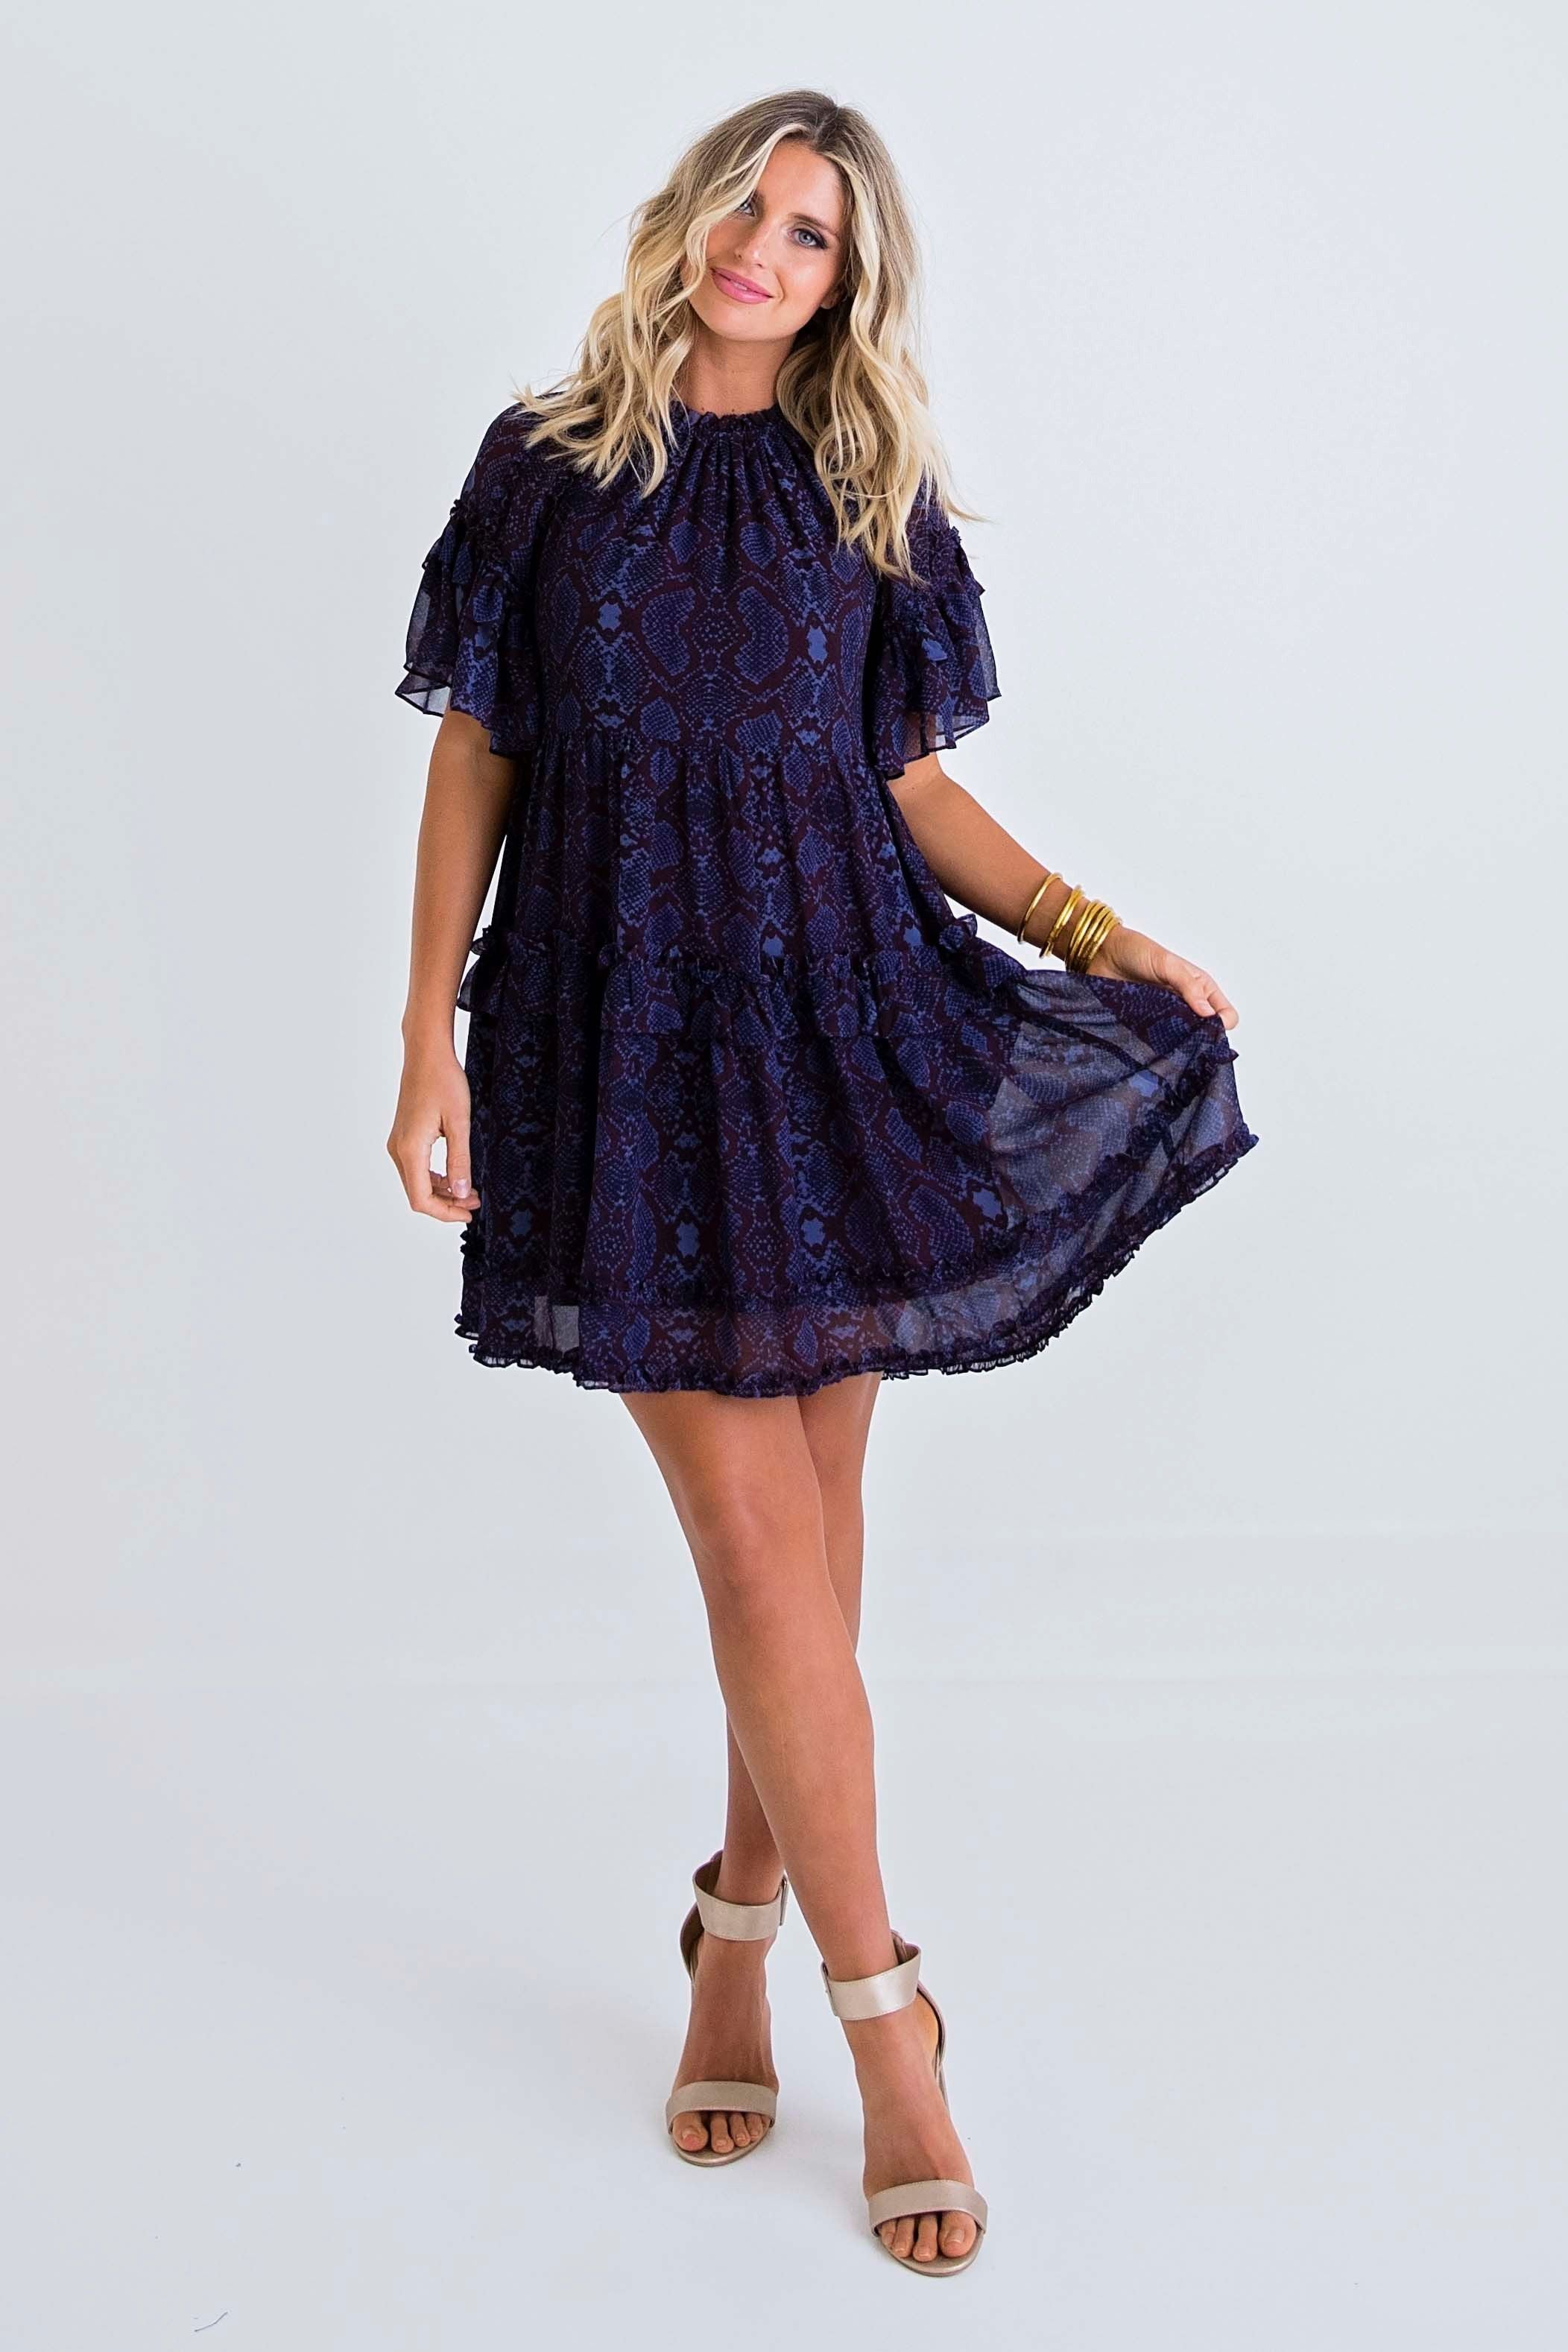 Serpentine Chiffon Dress